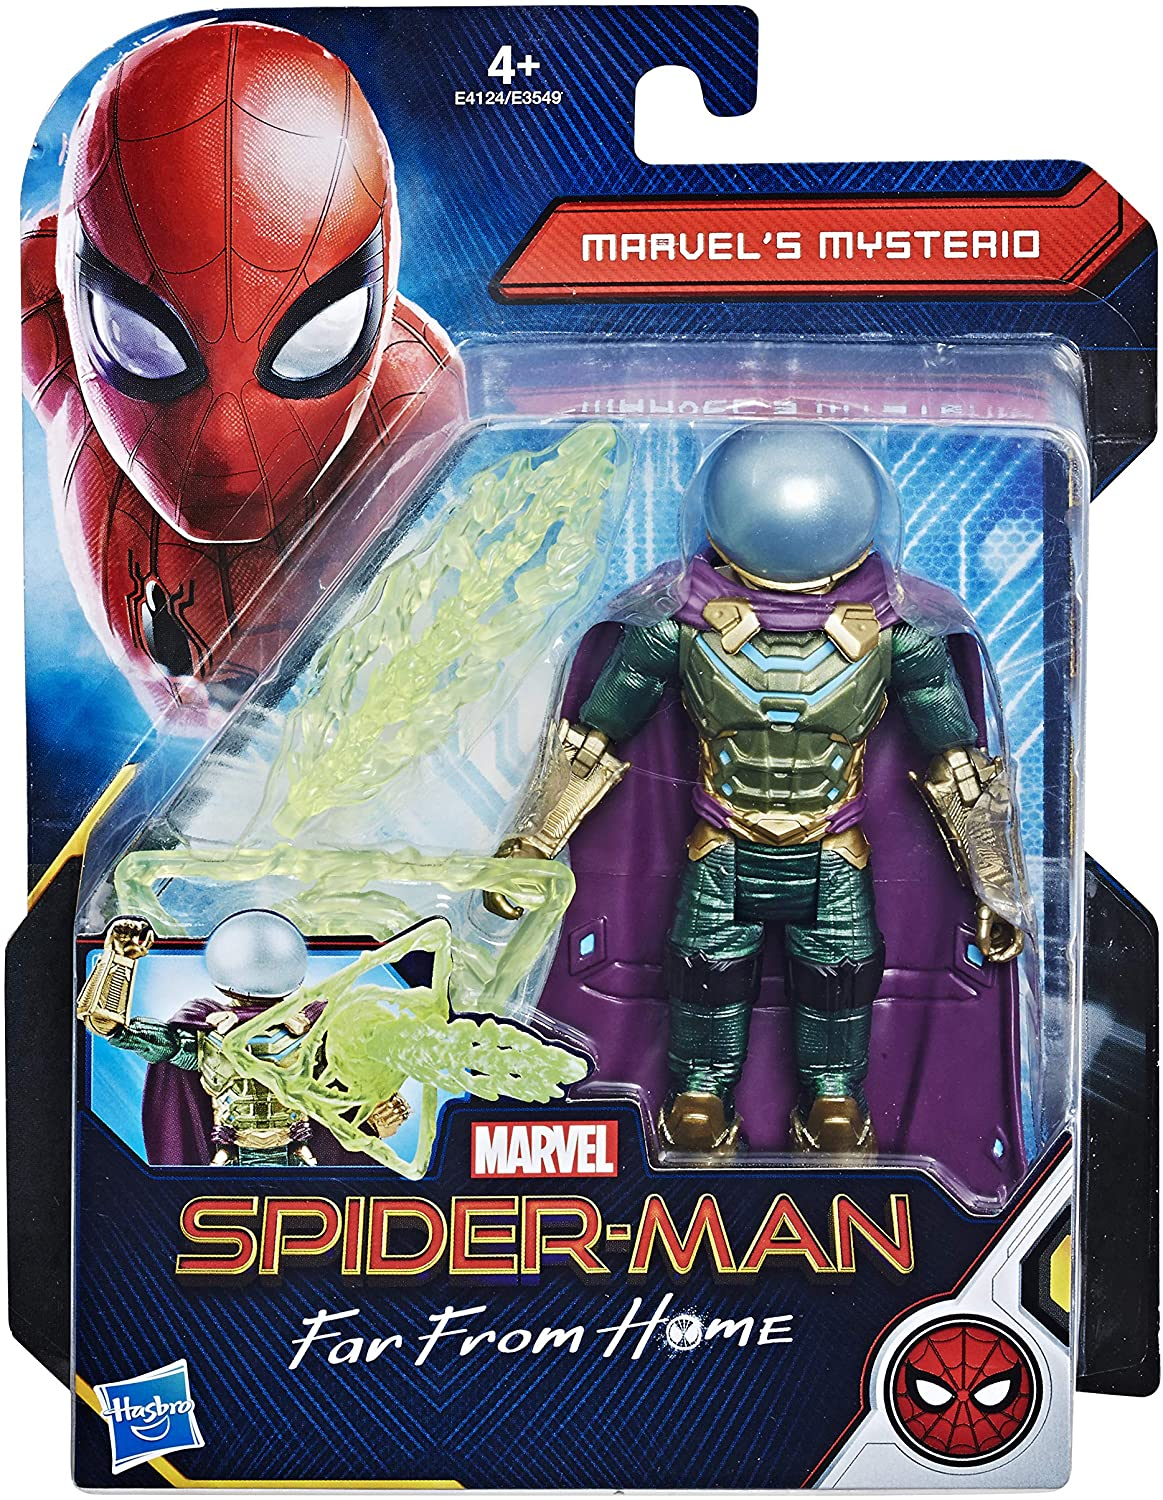 Spiderman - Far From Home 6in Figure - Mysterio